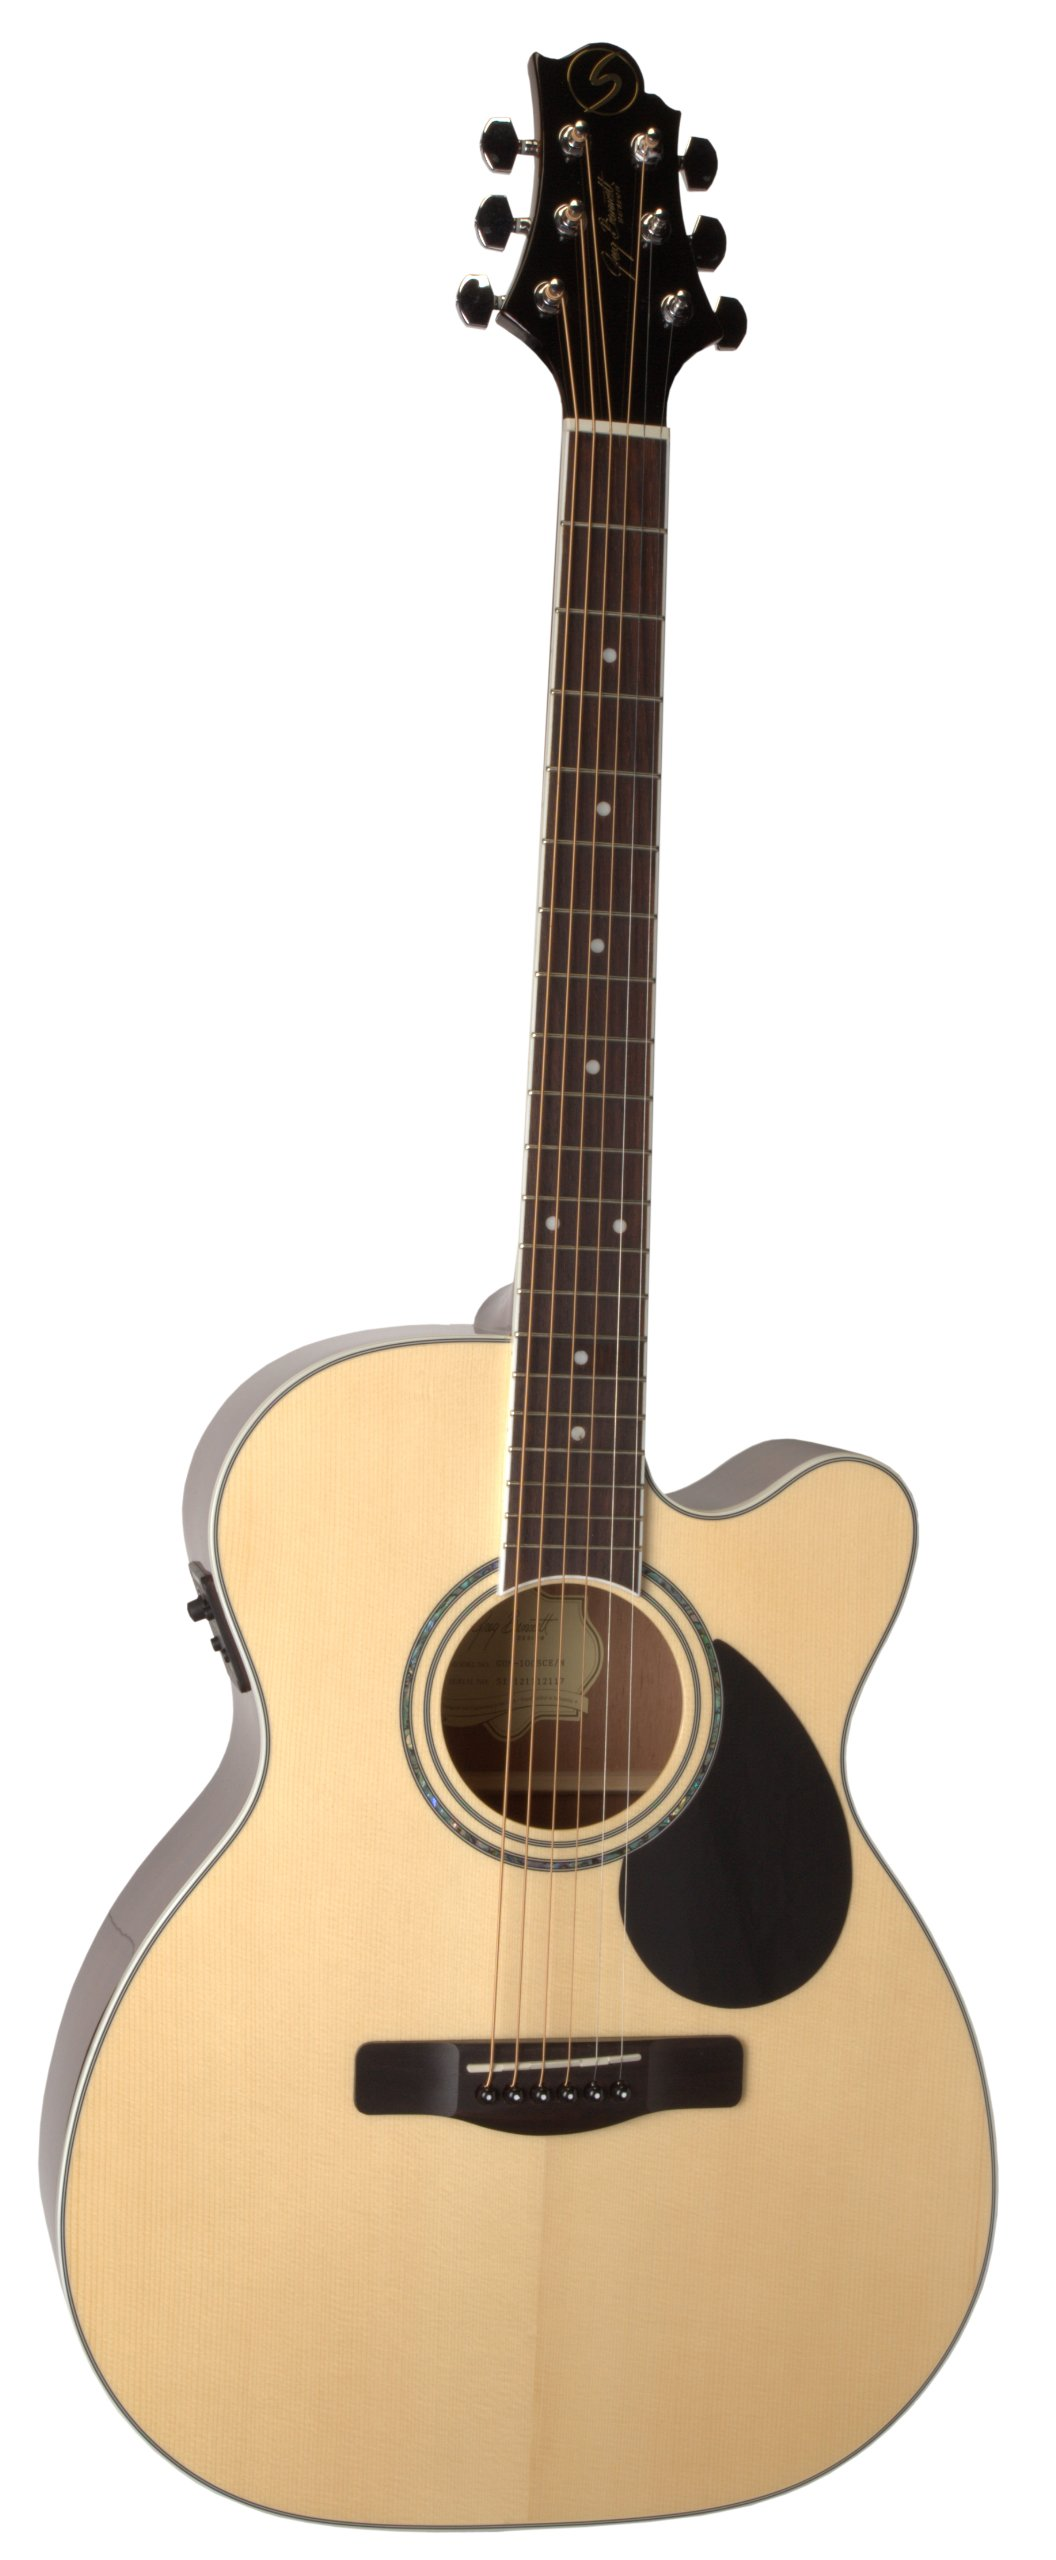 Samick Music G Series 100 GOM100SCE Orchestra Body Acoustic-Electric Guitar, Natural by Samick